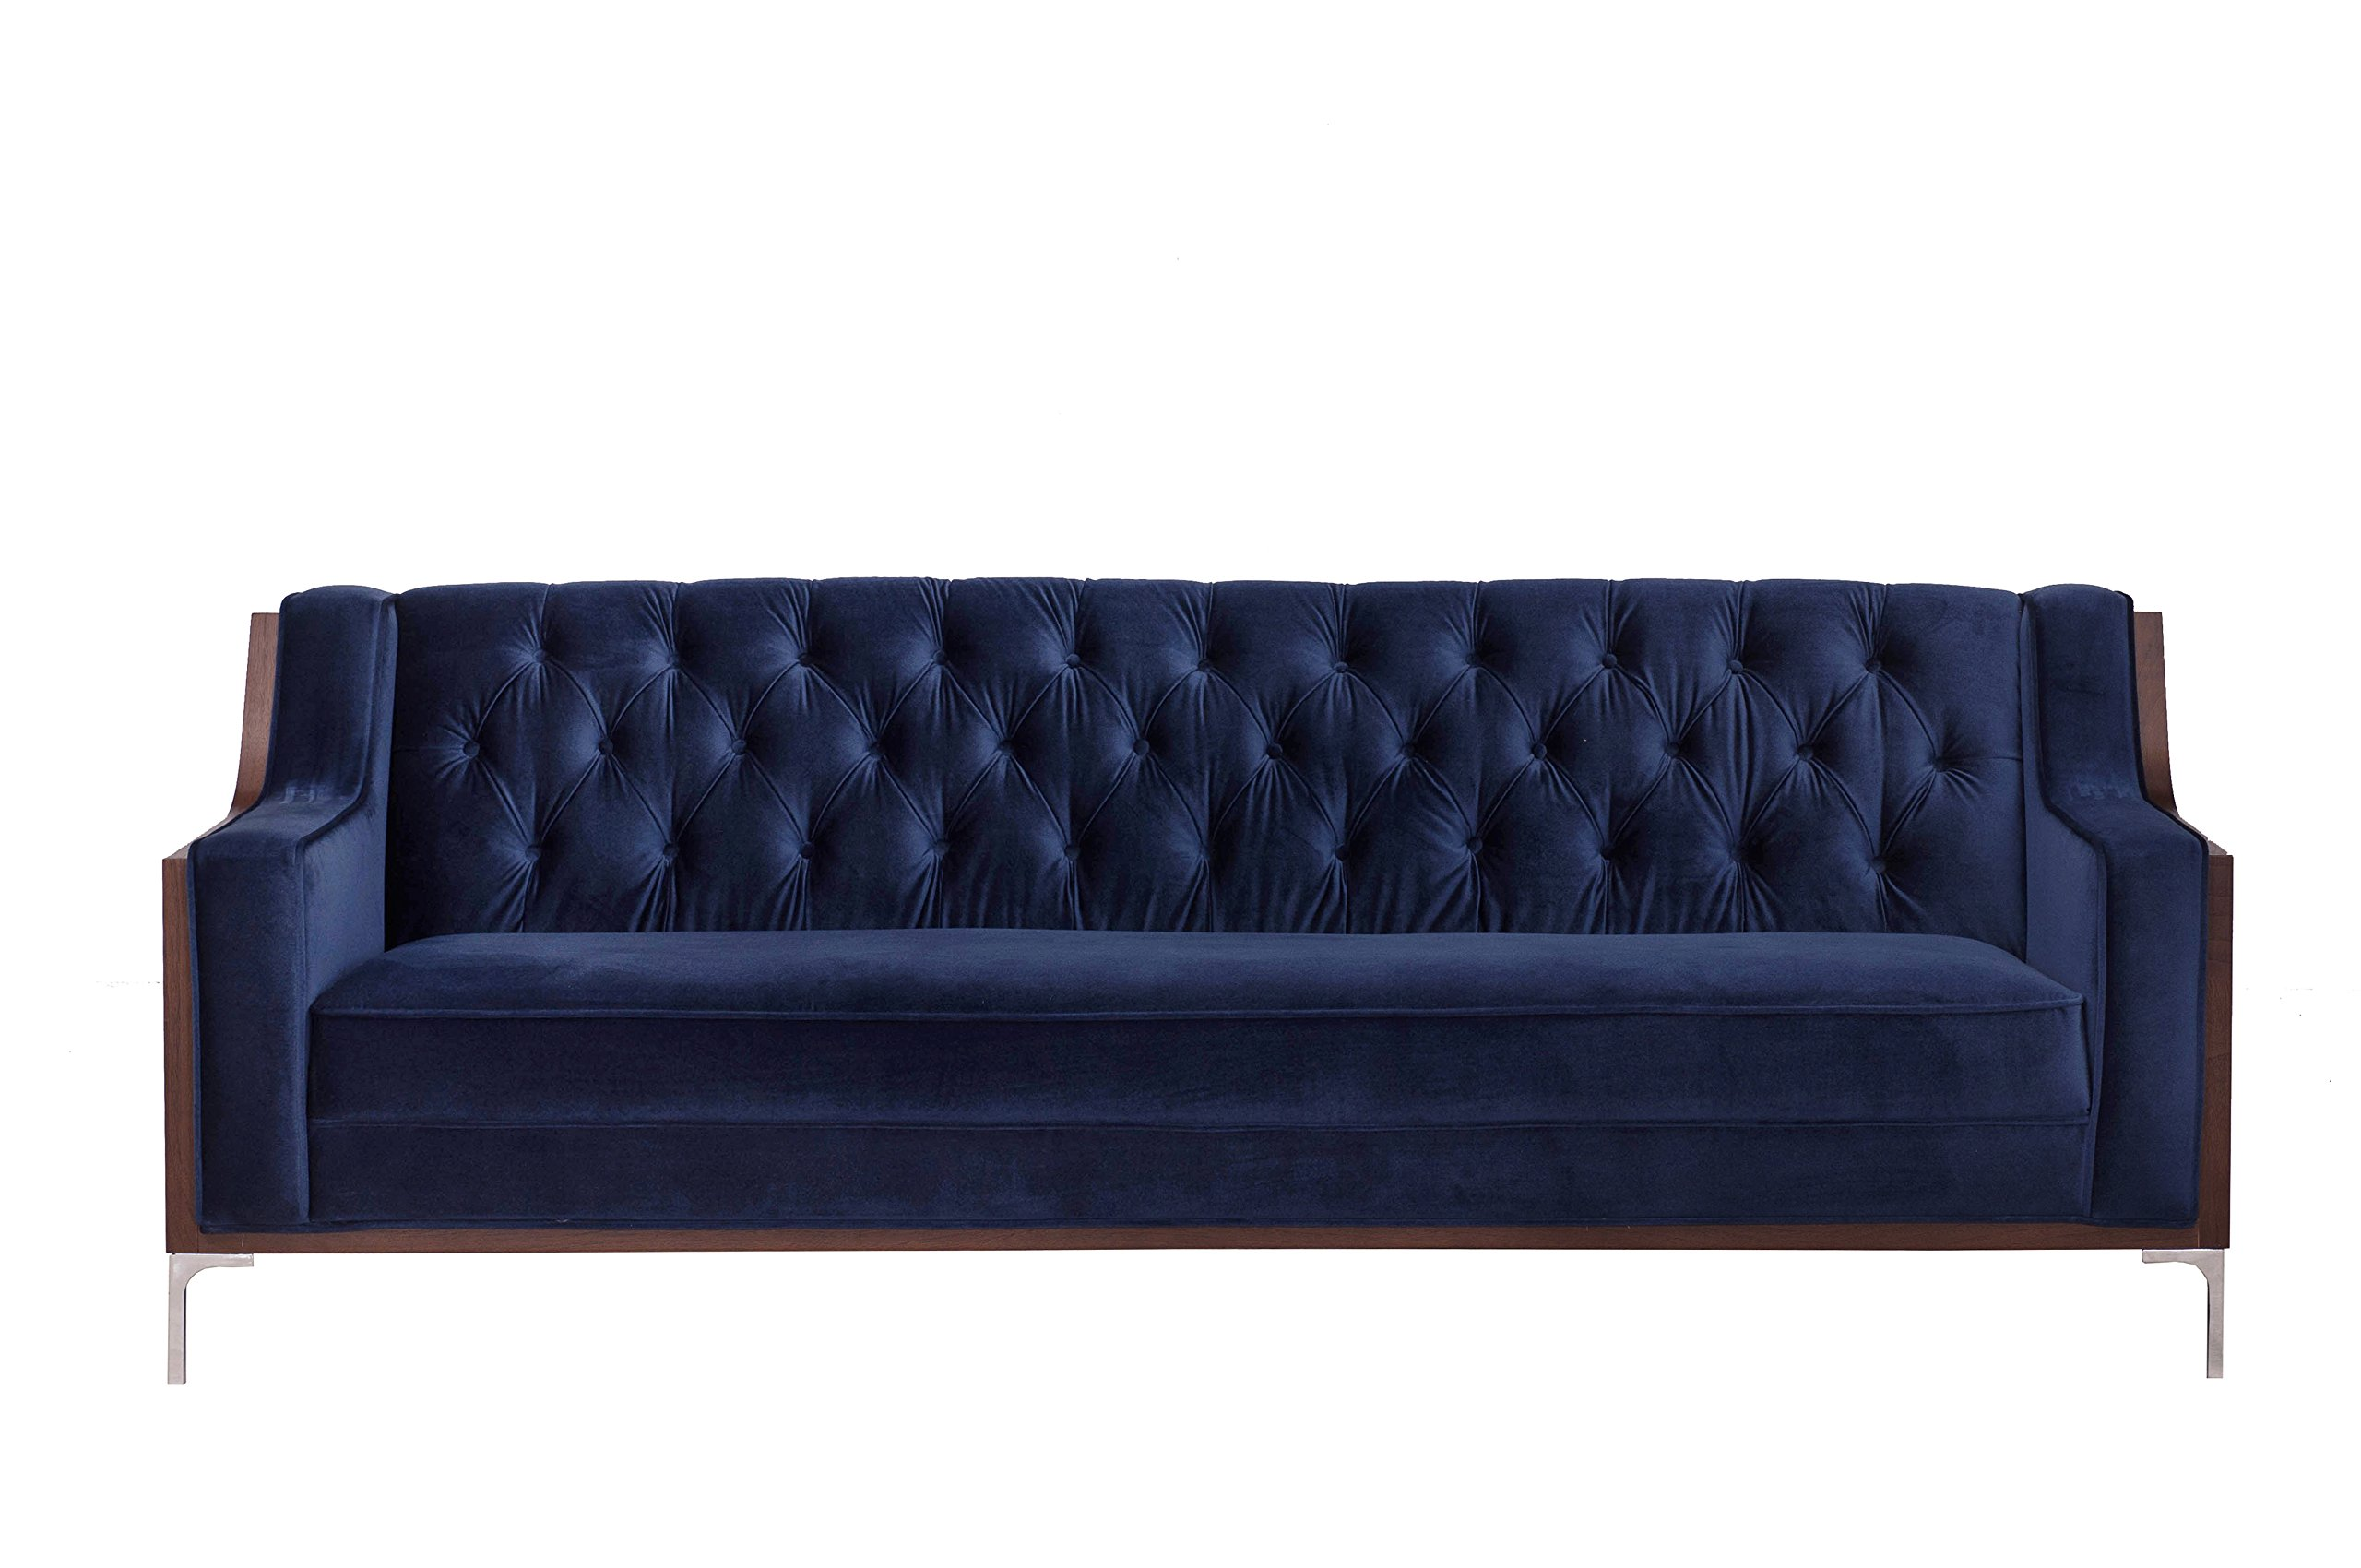 Iconic Home Clark Sofa Button Tufted Velvet Walnut Finish Swoop Arm Wood Frame with Polished Metal Legs, Modern Contemporary, Navy by Iconic Home (Image #3)